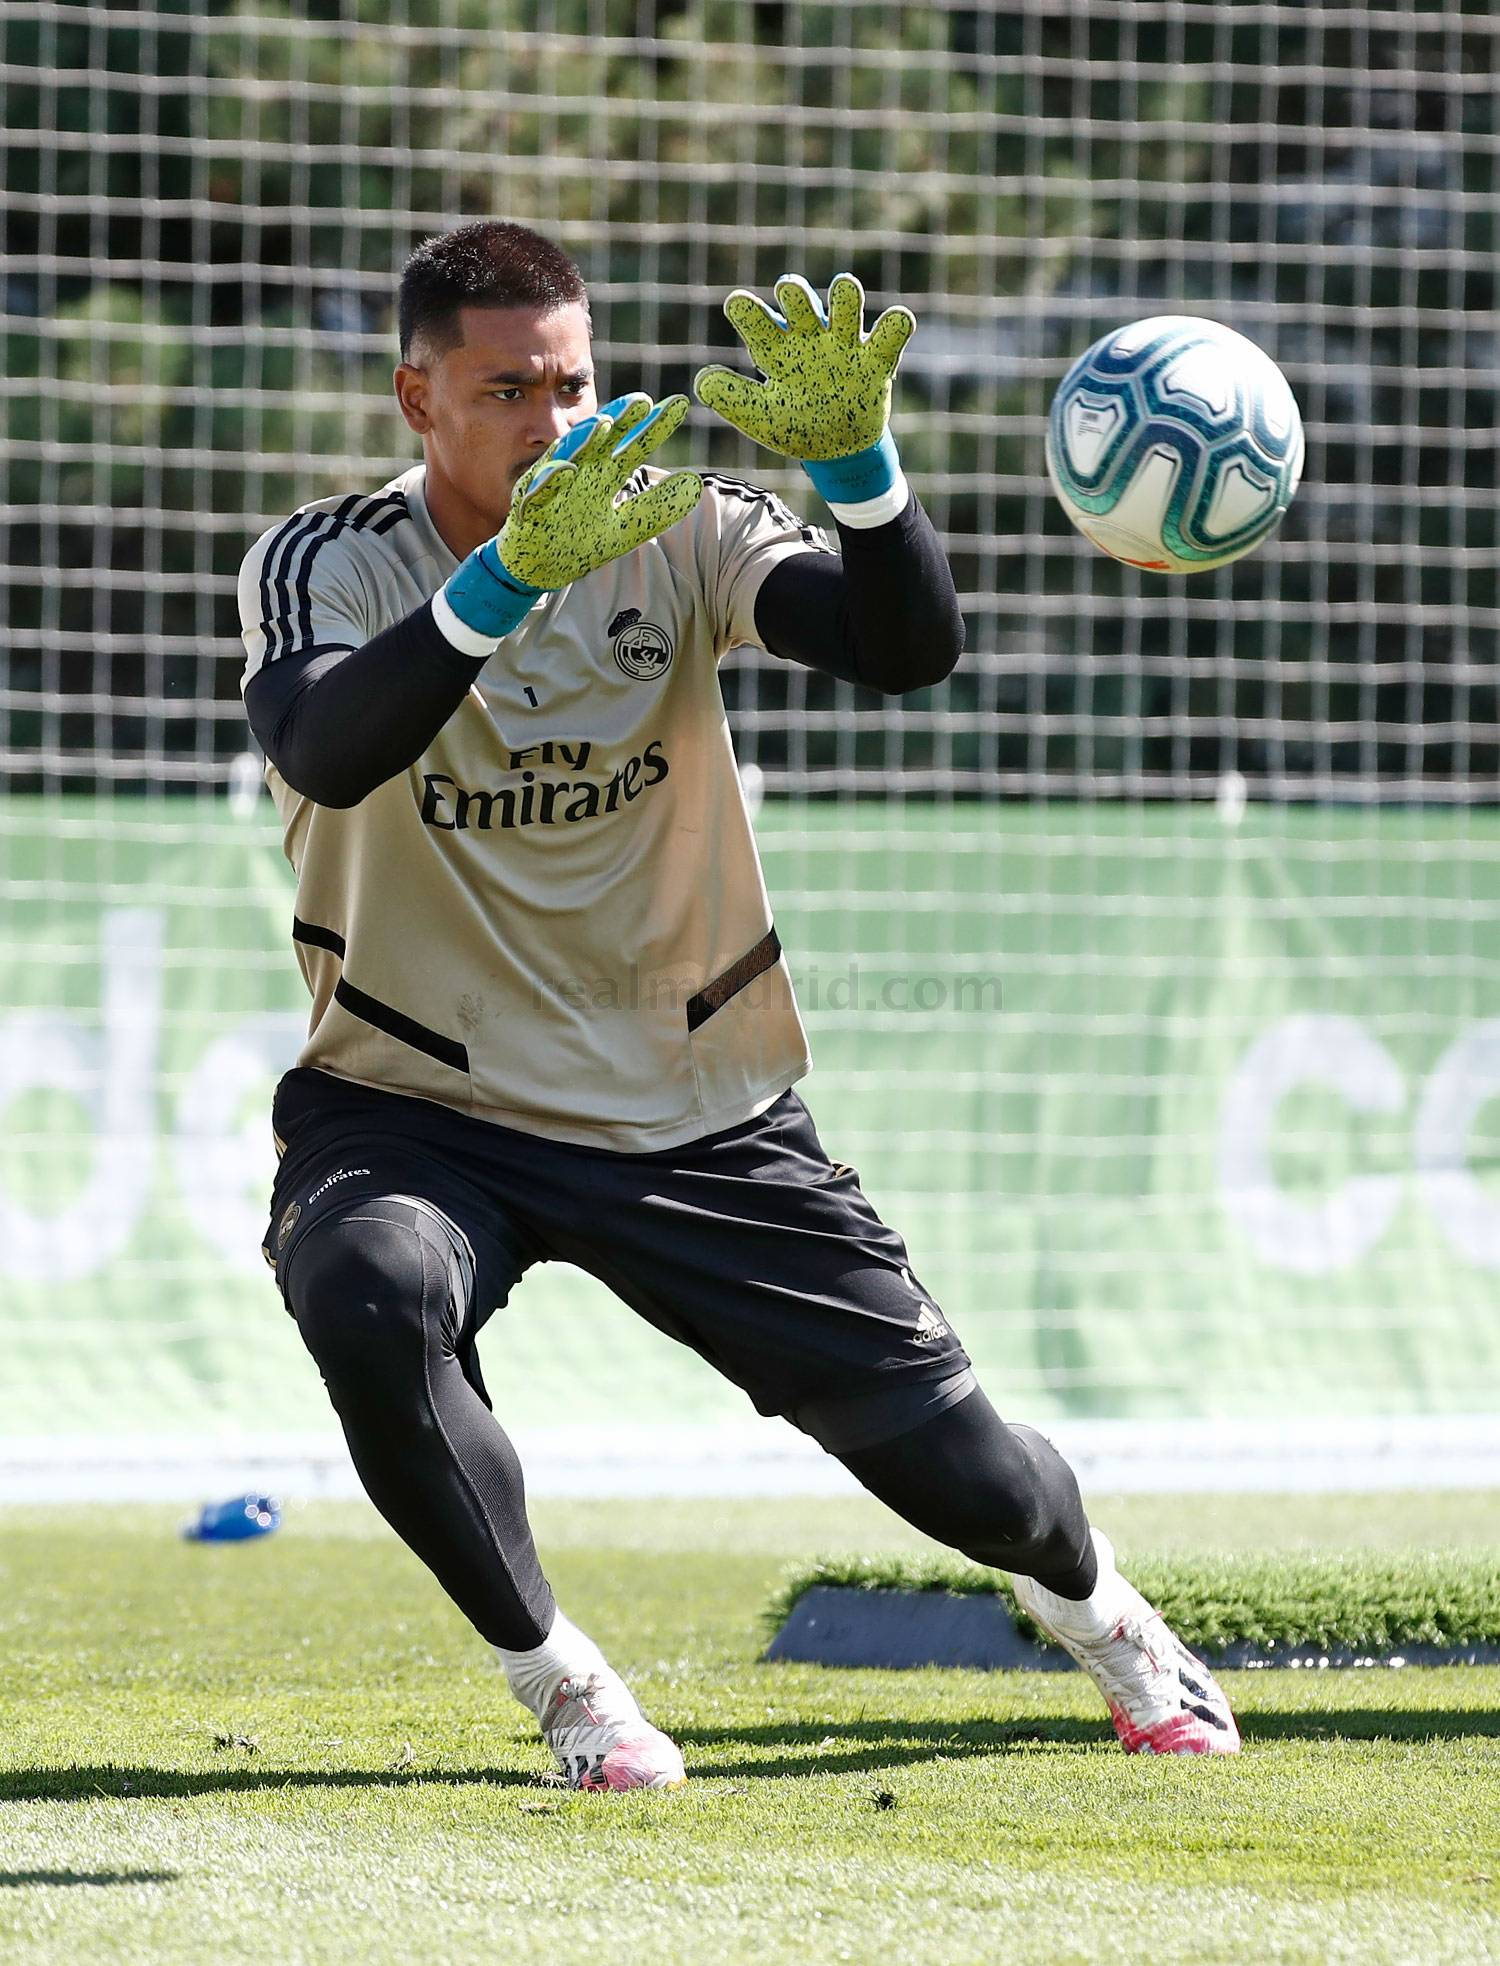 Real Madrid - Entrenamiento del Real Madrid  - 27-06-2020